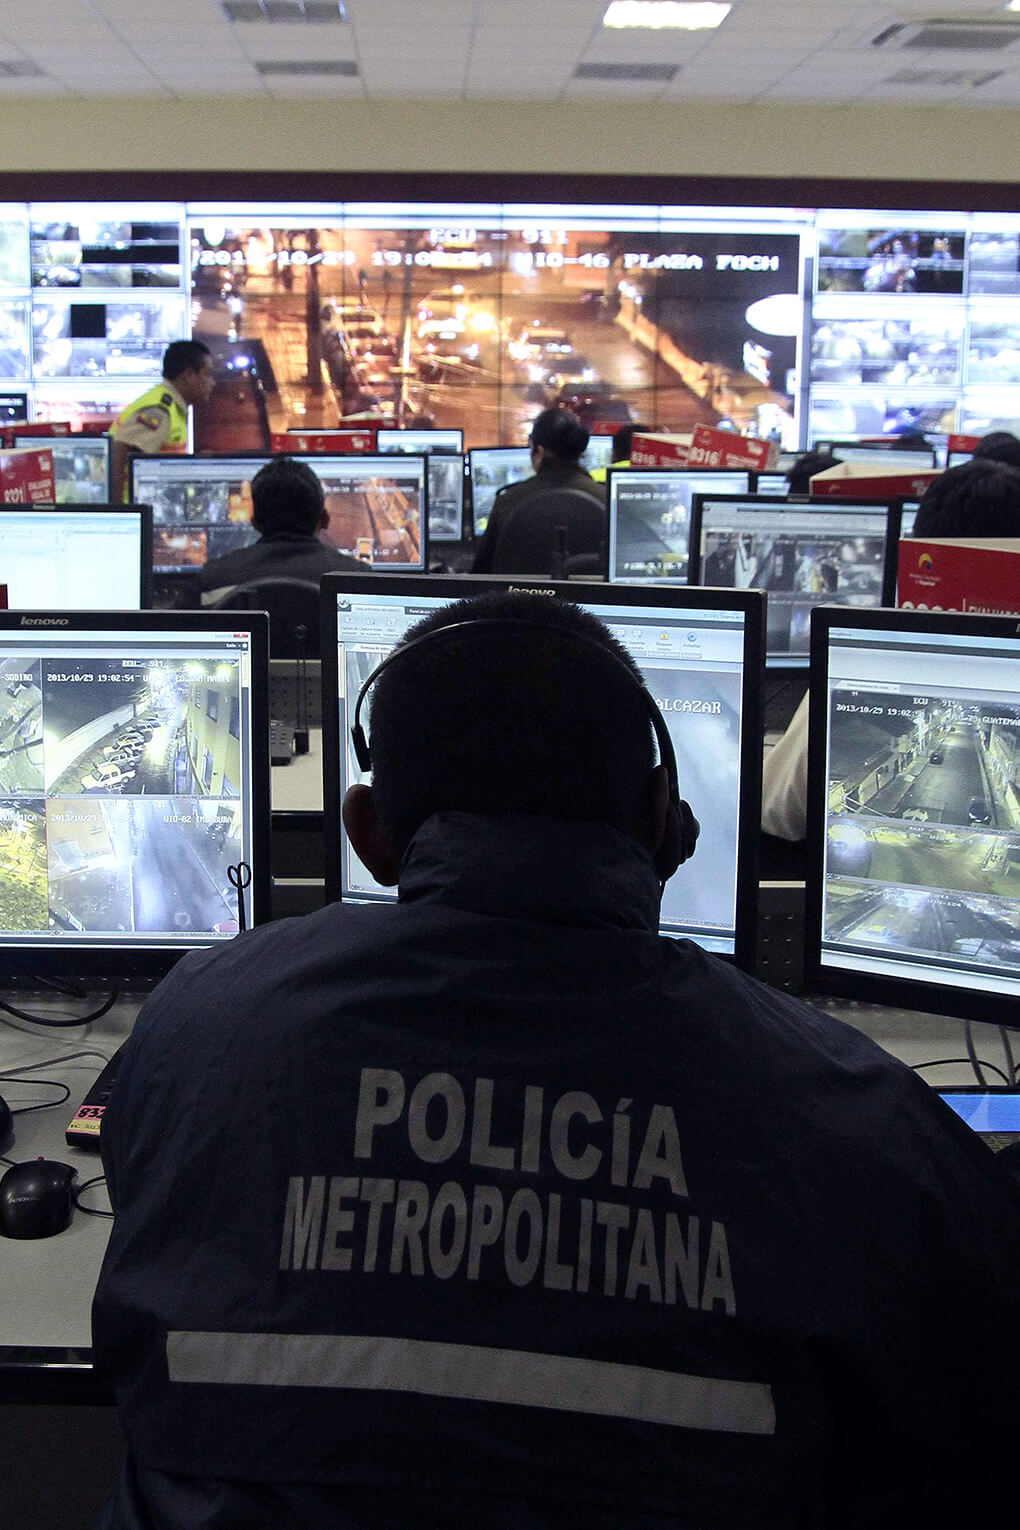 Police oversee video surveillance system in Quito, Ecuador, in 2013. Chinese firms have helped build Ecuador's surveillance systems.